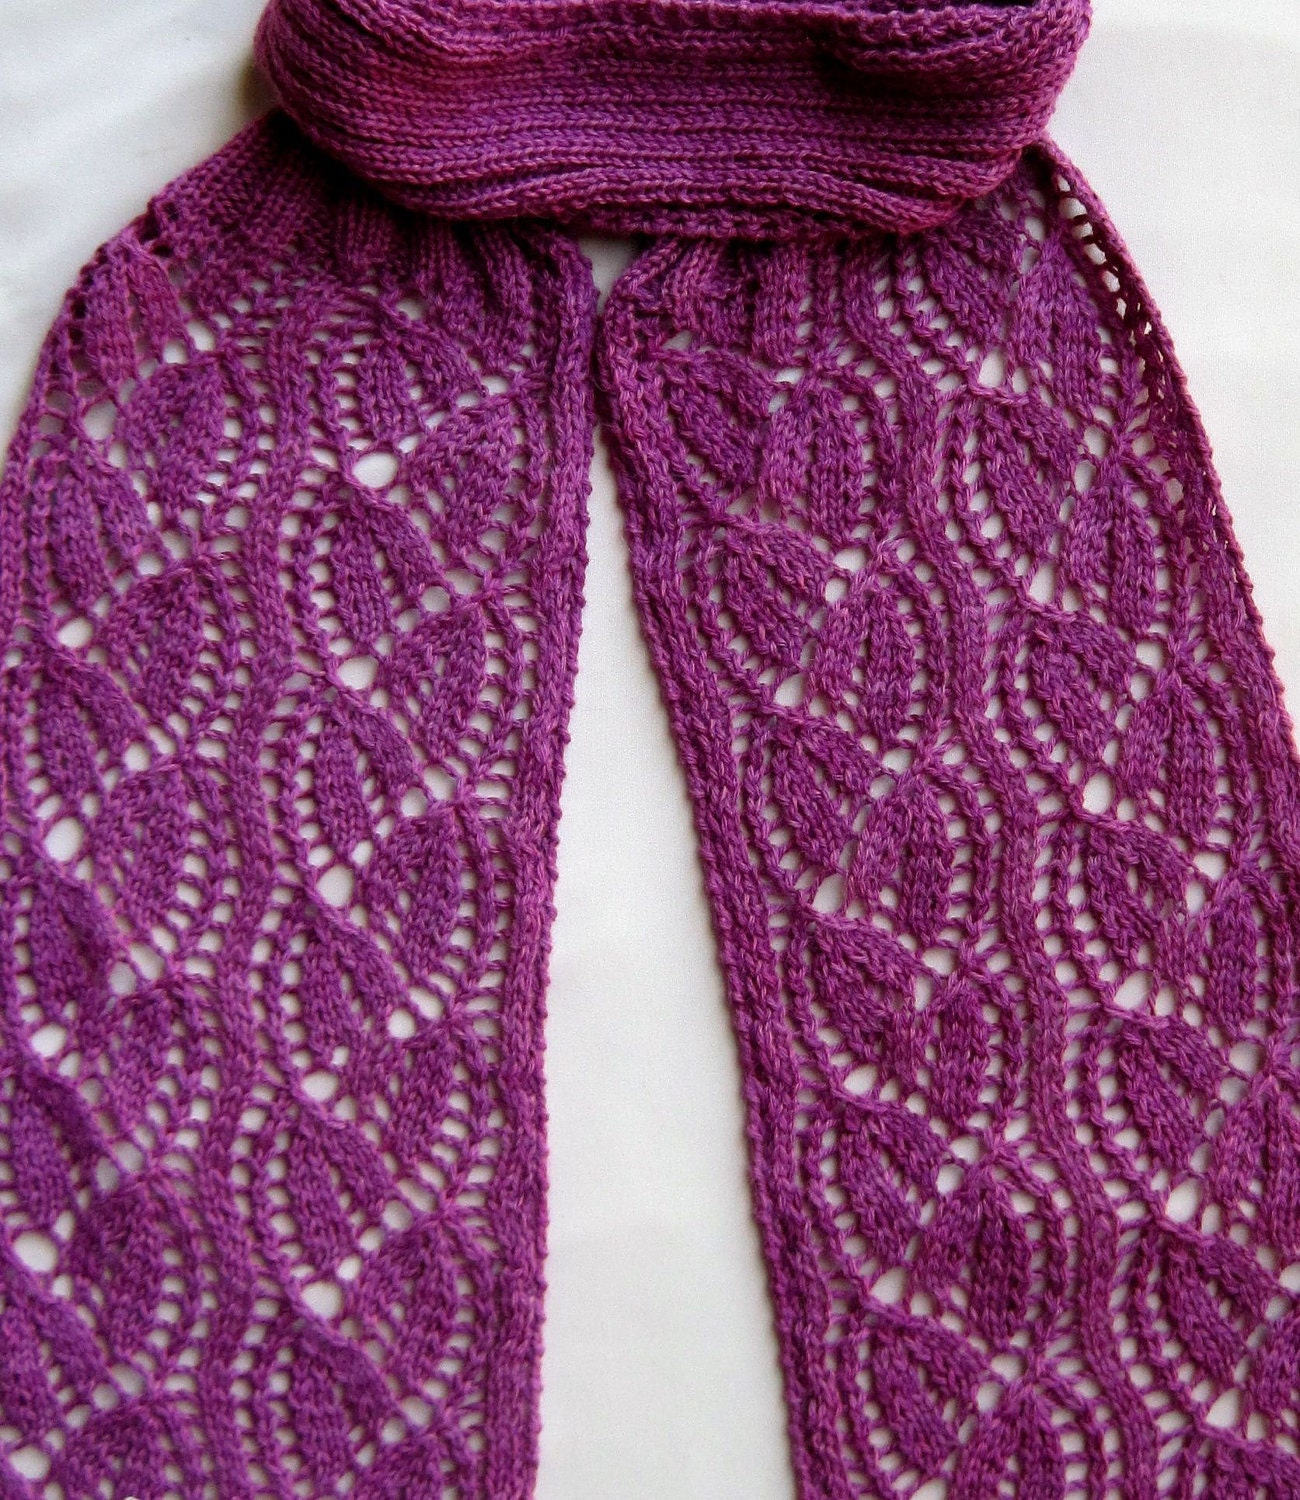 Simple Lace Knitting Pattern For Scarf : Knit Scarf Pattern: Dayflower Lace Turtleneck Scarf Knitting